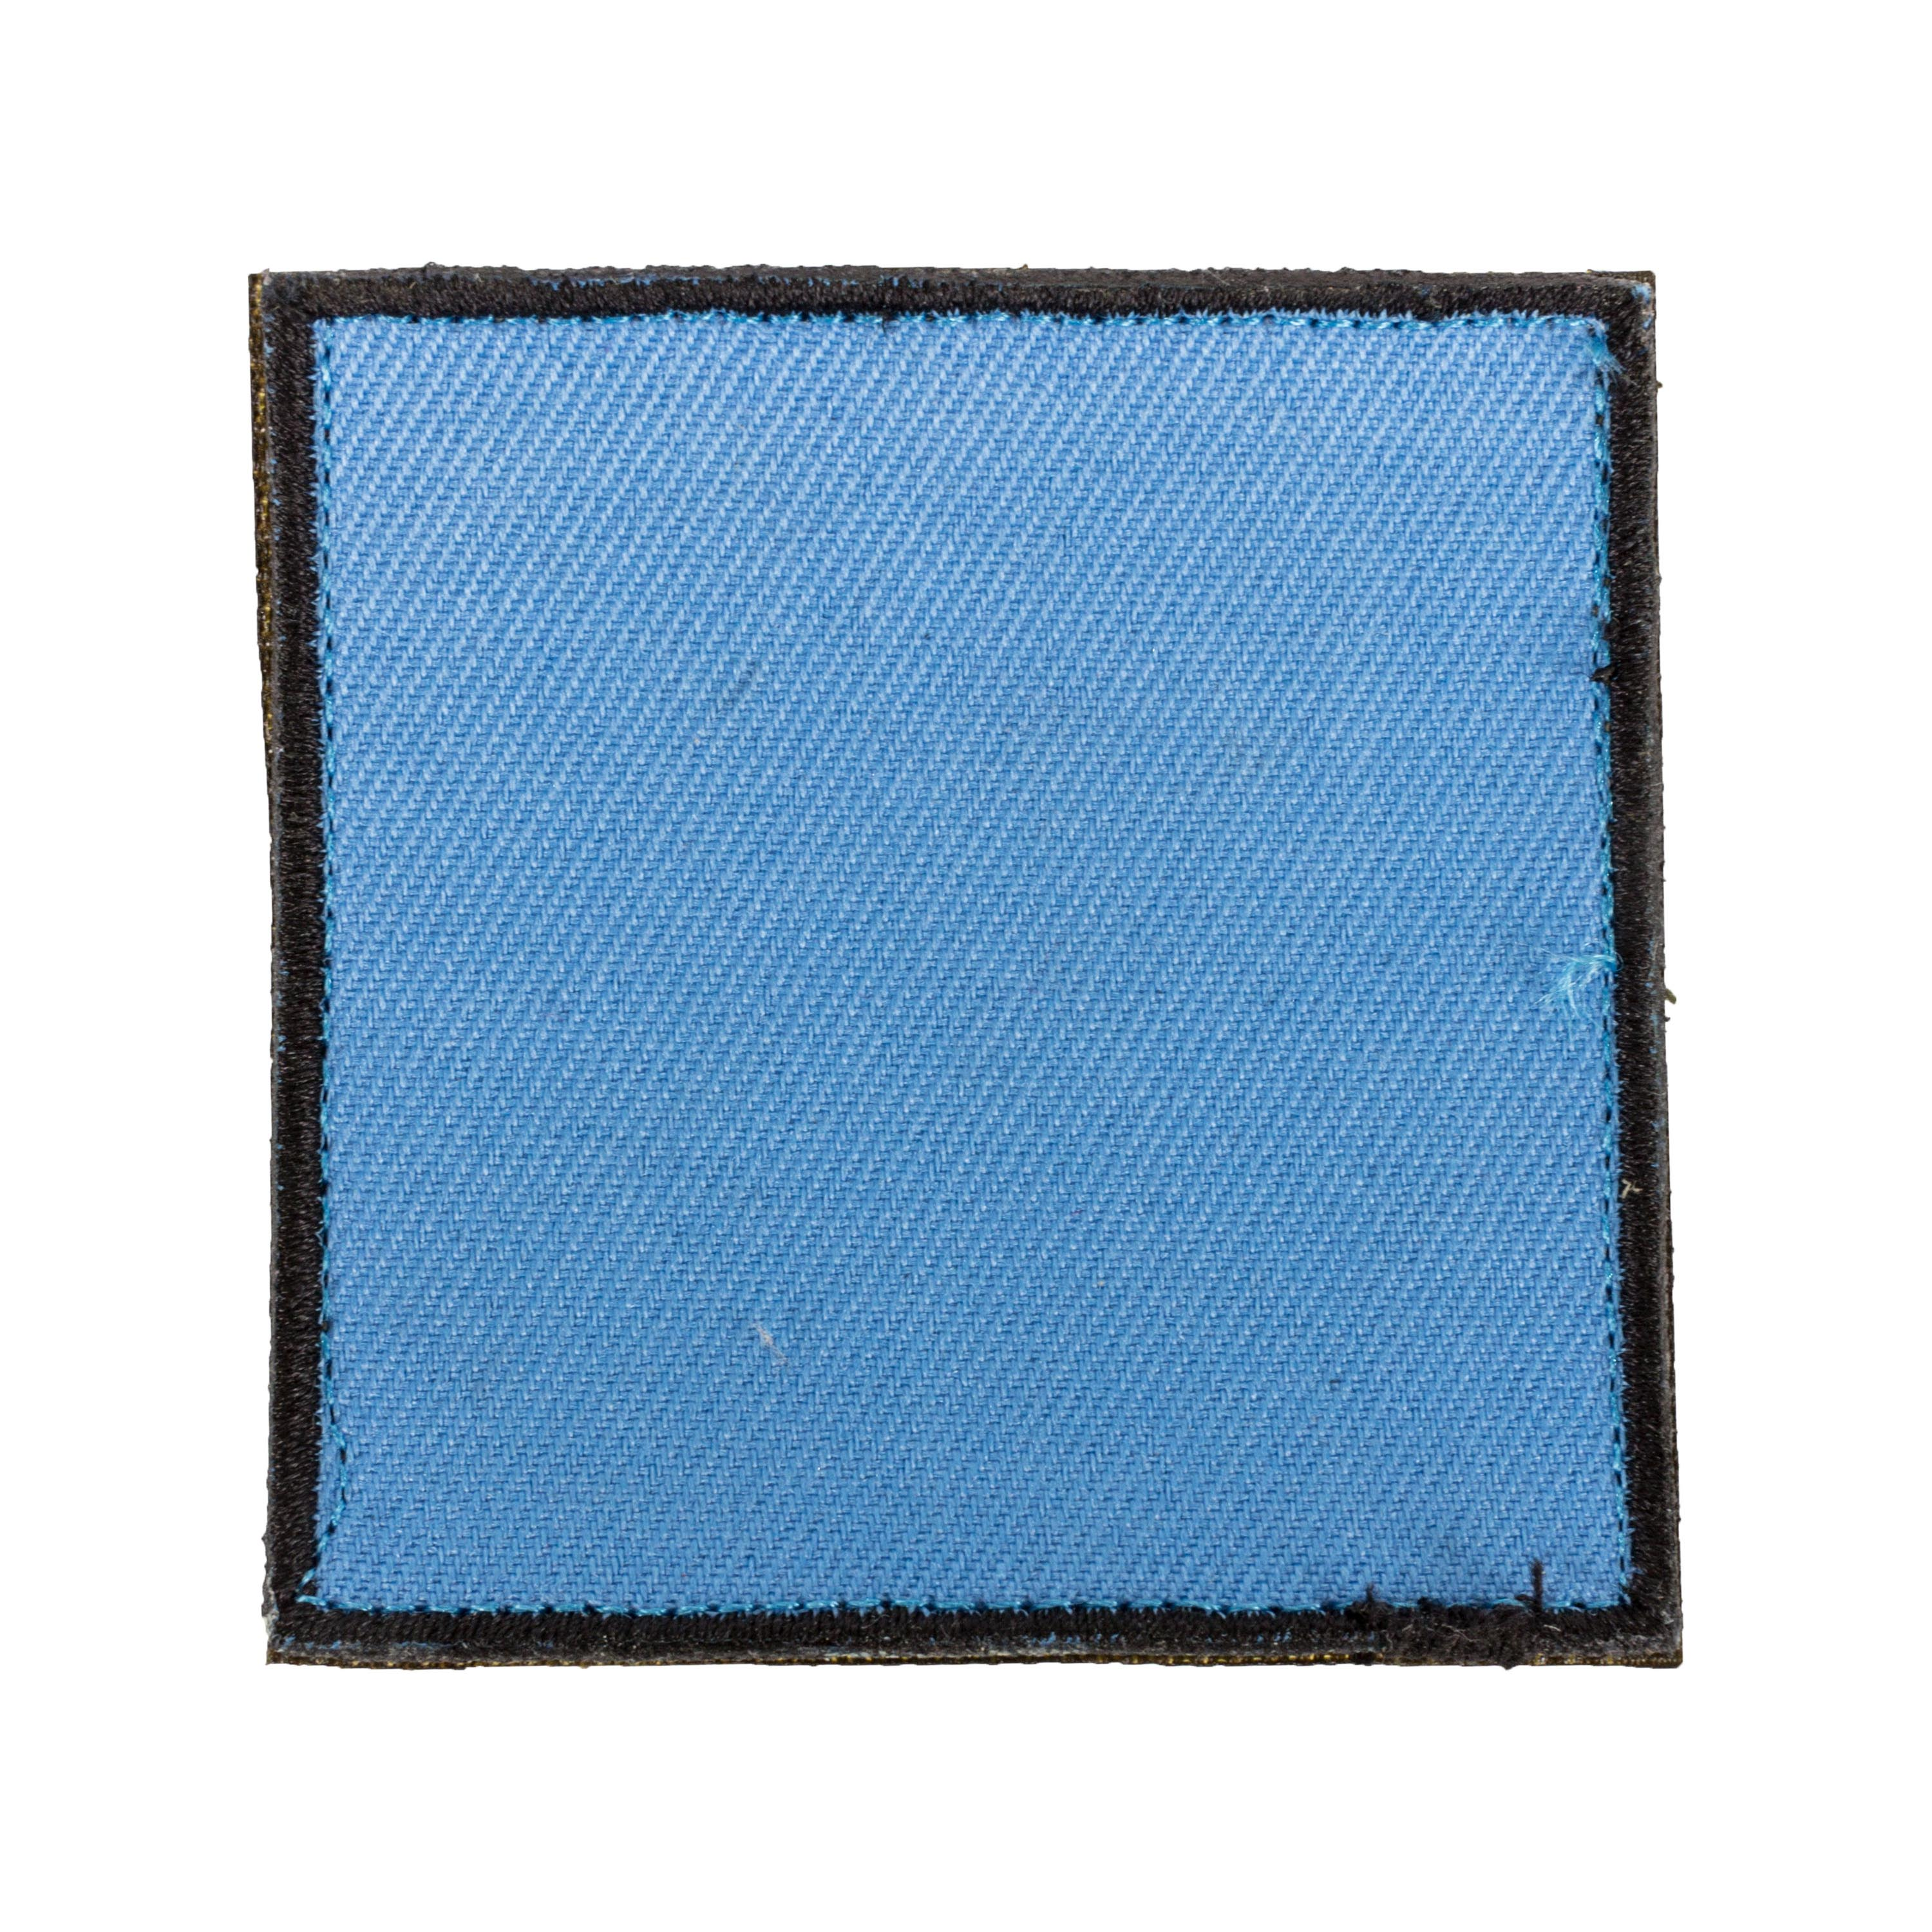 Patch Kompaniefarbe blau